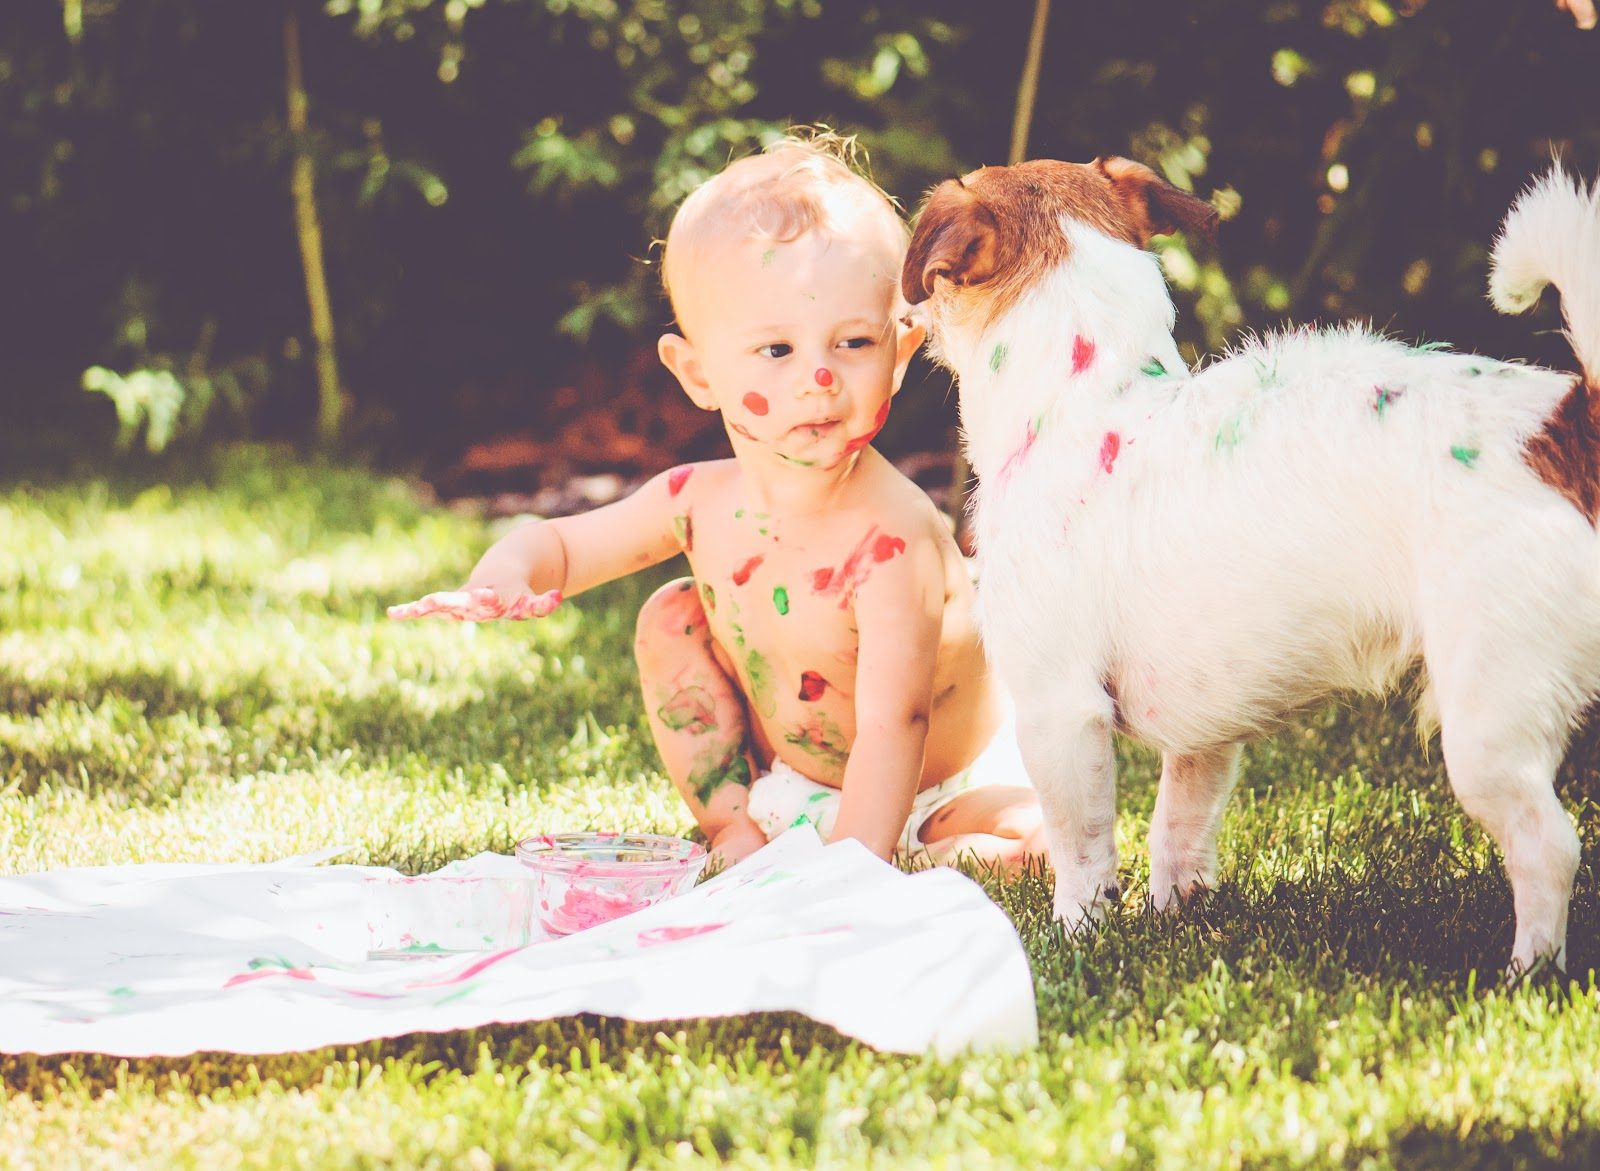 Baby finger paints puppy summer fun kids to do list edible paint